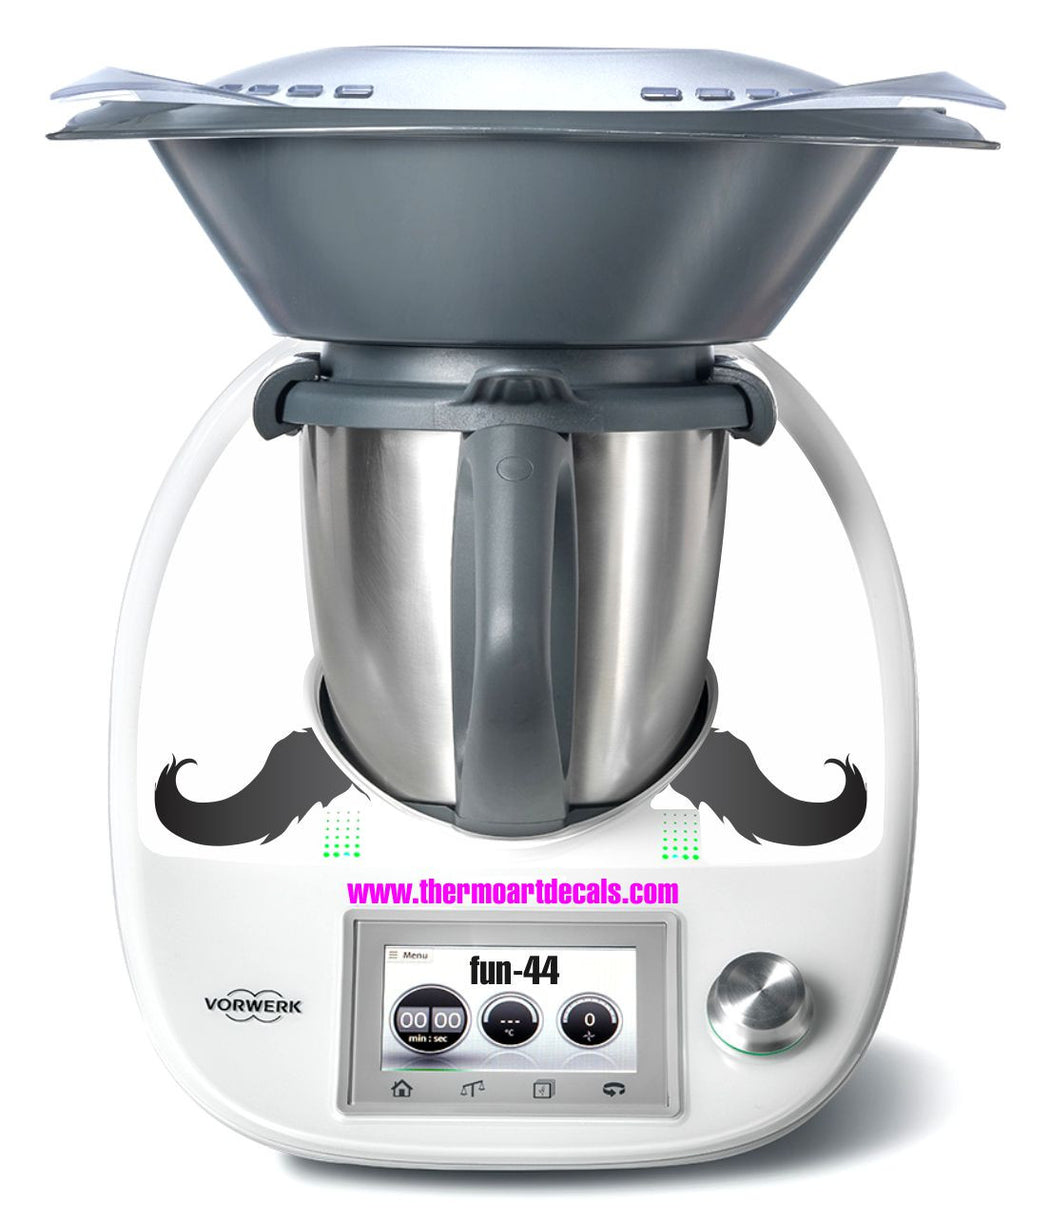 Moustache Fun 44 decal TM5 - the TM shop - Thermomix recipes, Thermomix cookbooks, Thermomix accessories